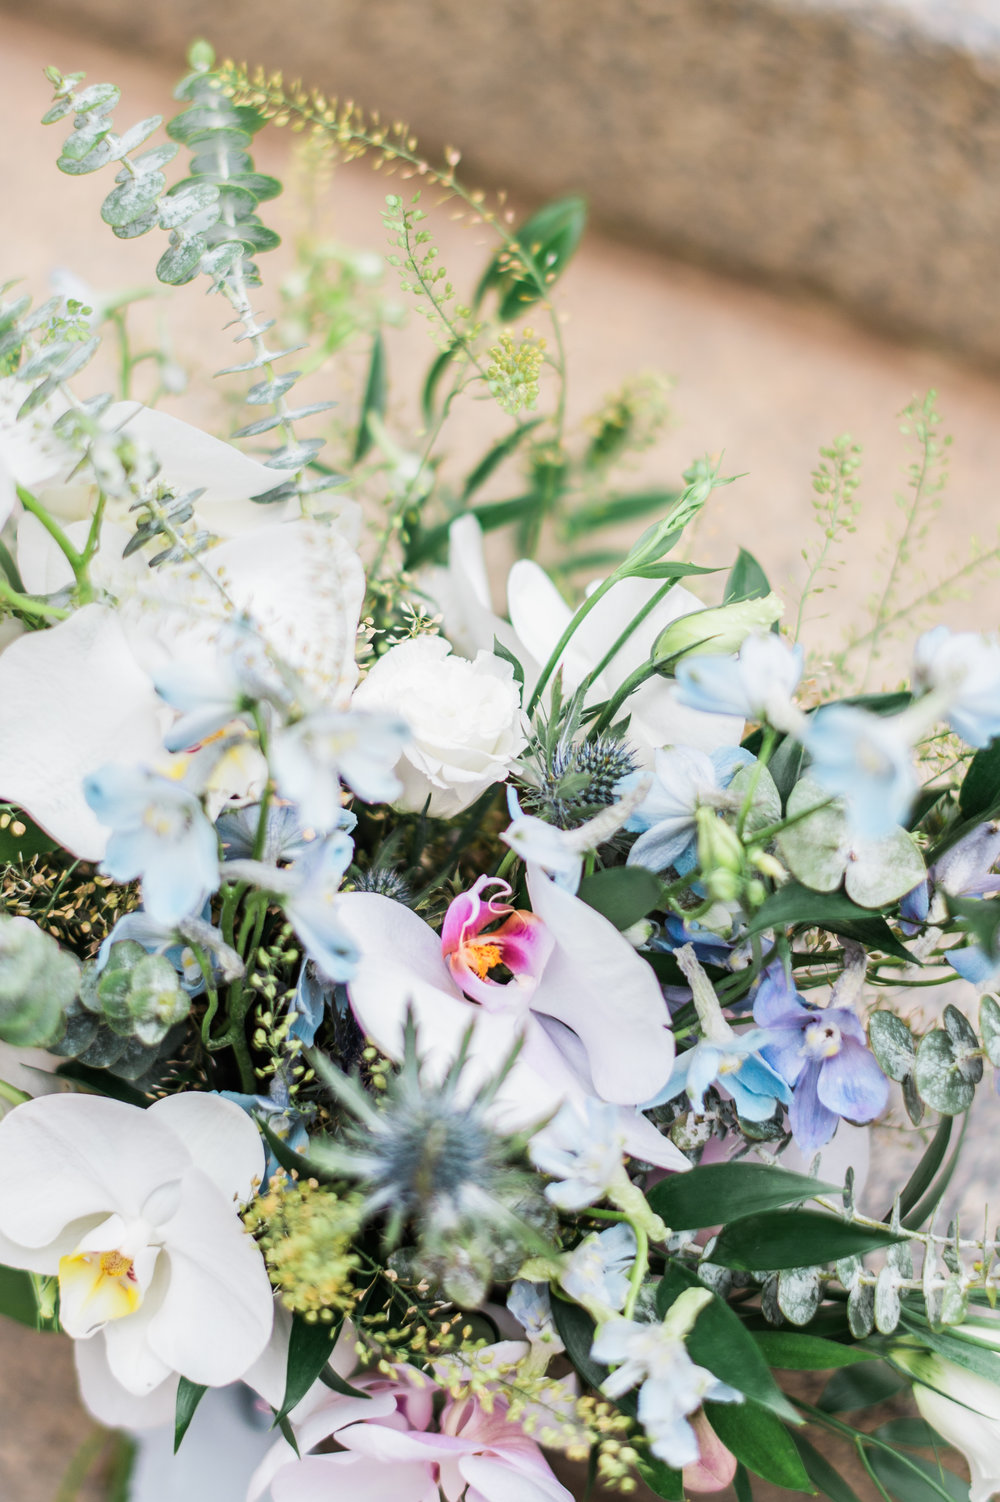 A close-up of the bouquet's colors and textures.